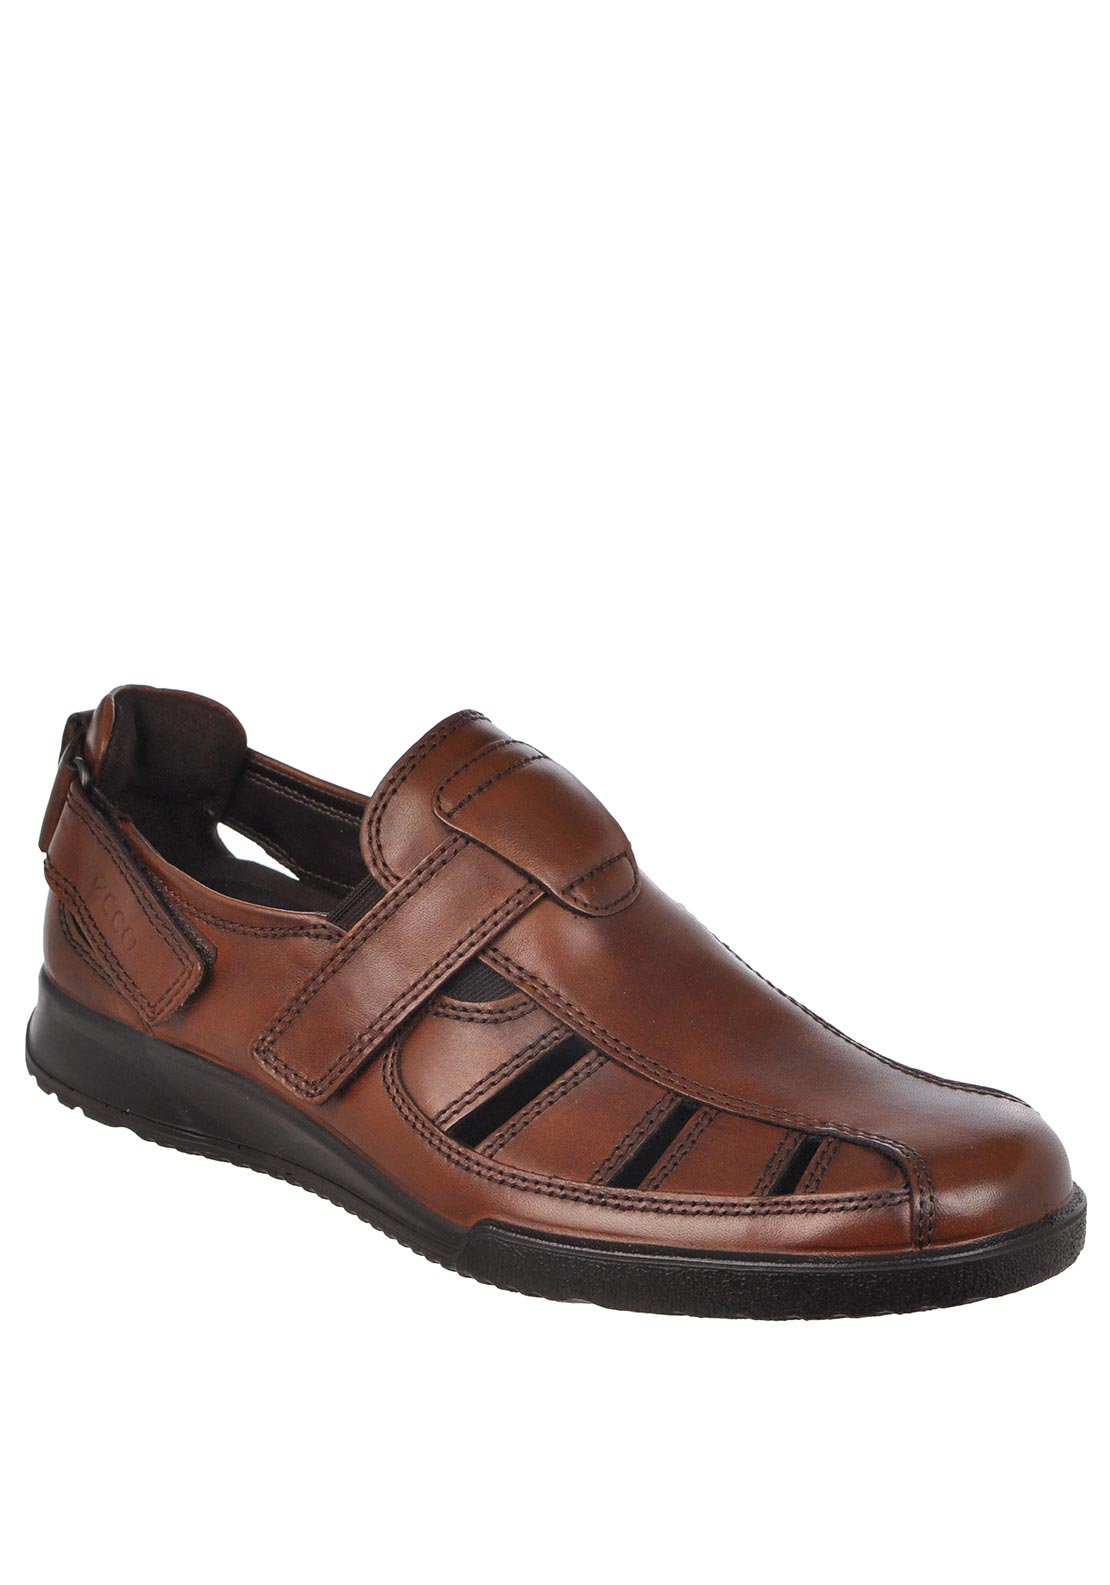 Ecco Mens Leather Cut Out Shoes, Brown